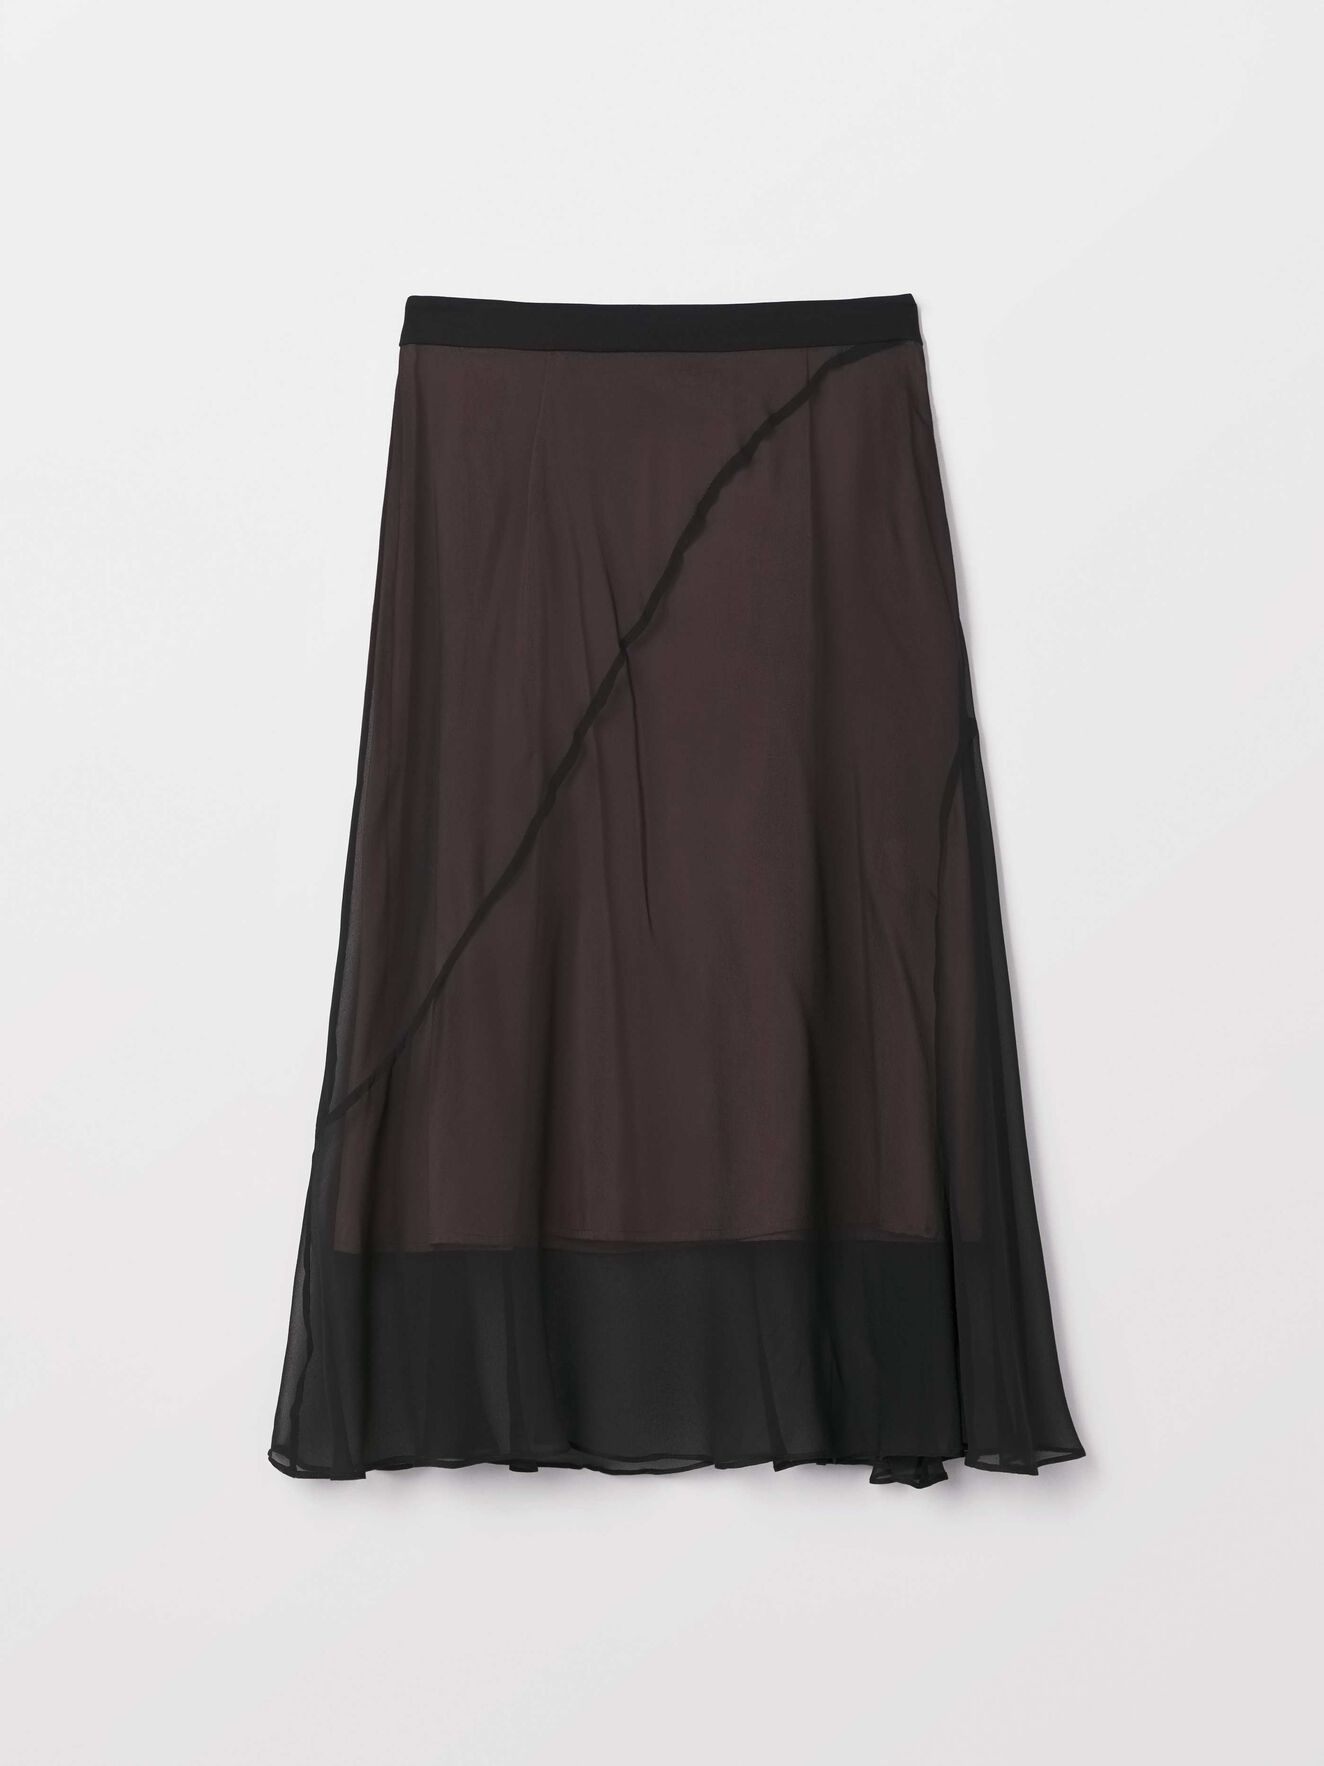 Majo Skirt in Midnight Black from Tiger of Sweden